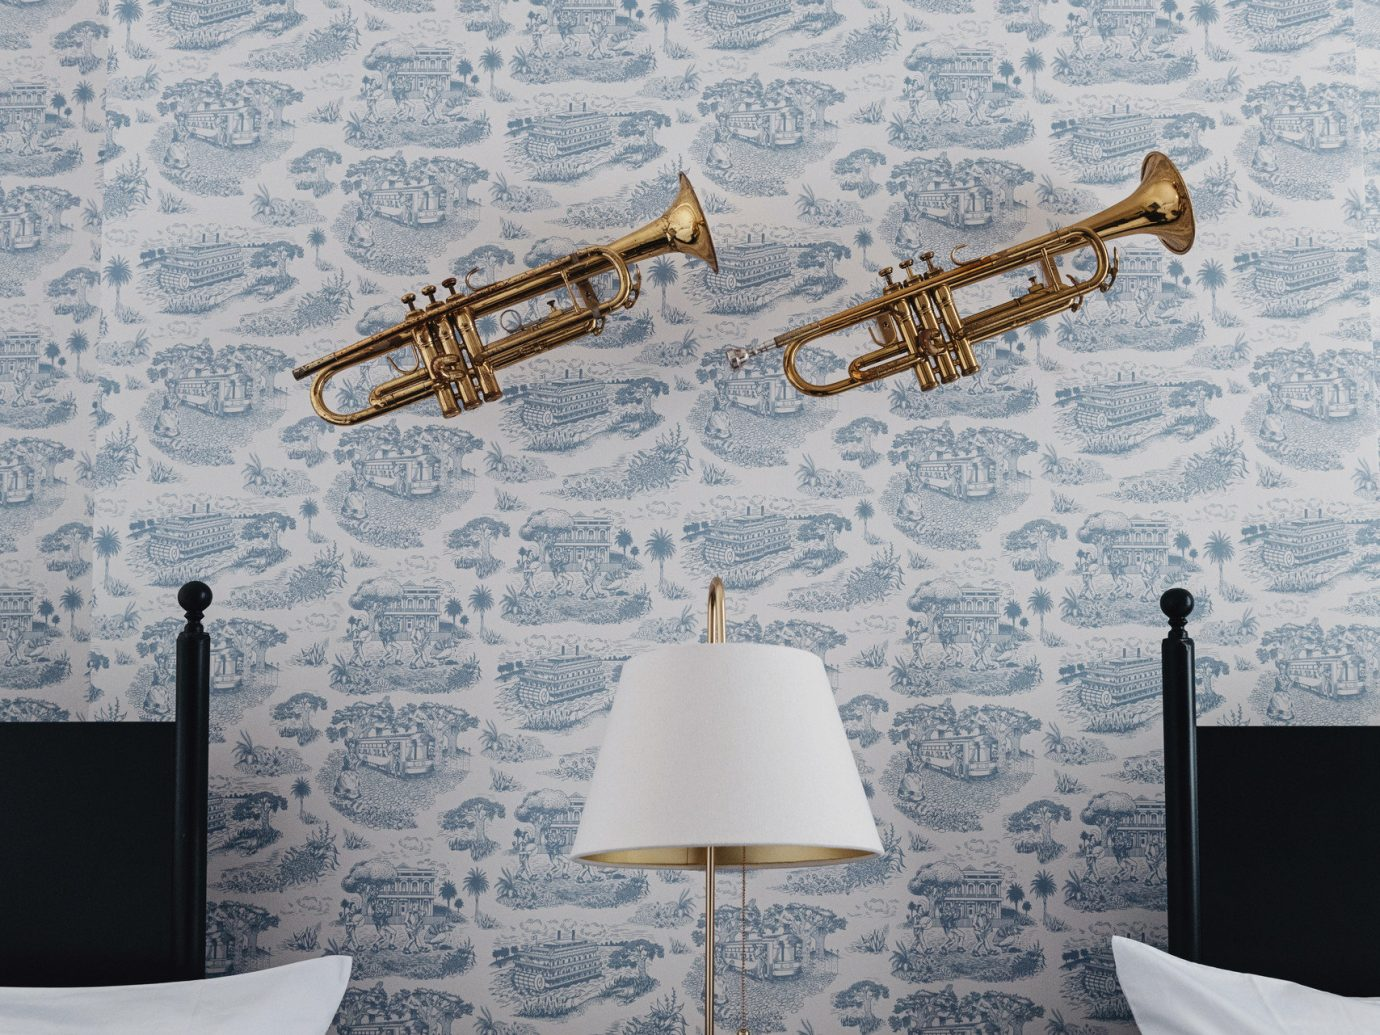 Boutique Hotels Hotels Trip Ideas indoor wall product lighting shape Design wallpaper pattern